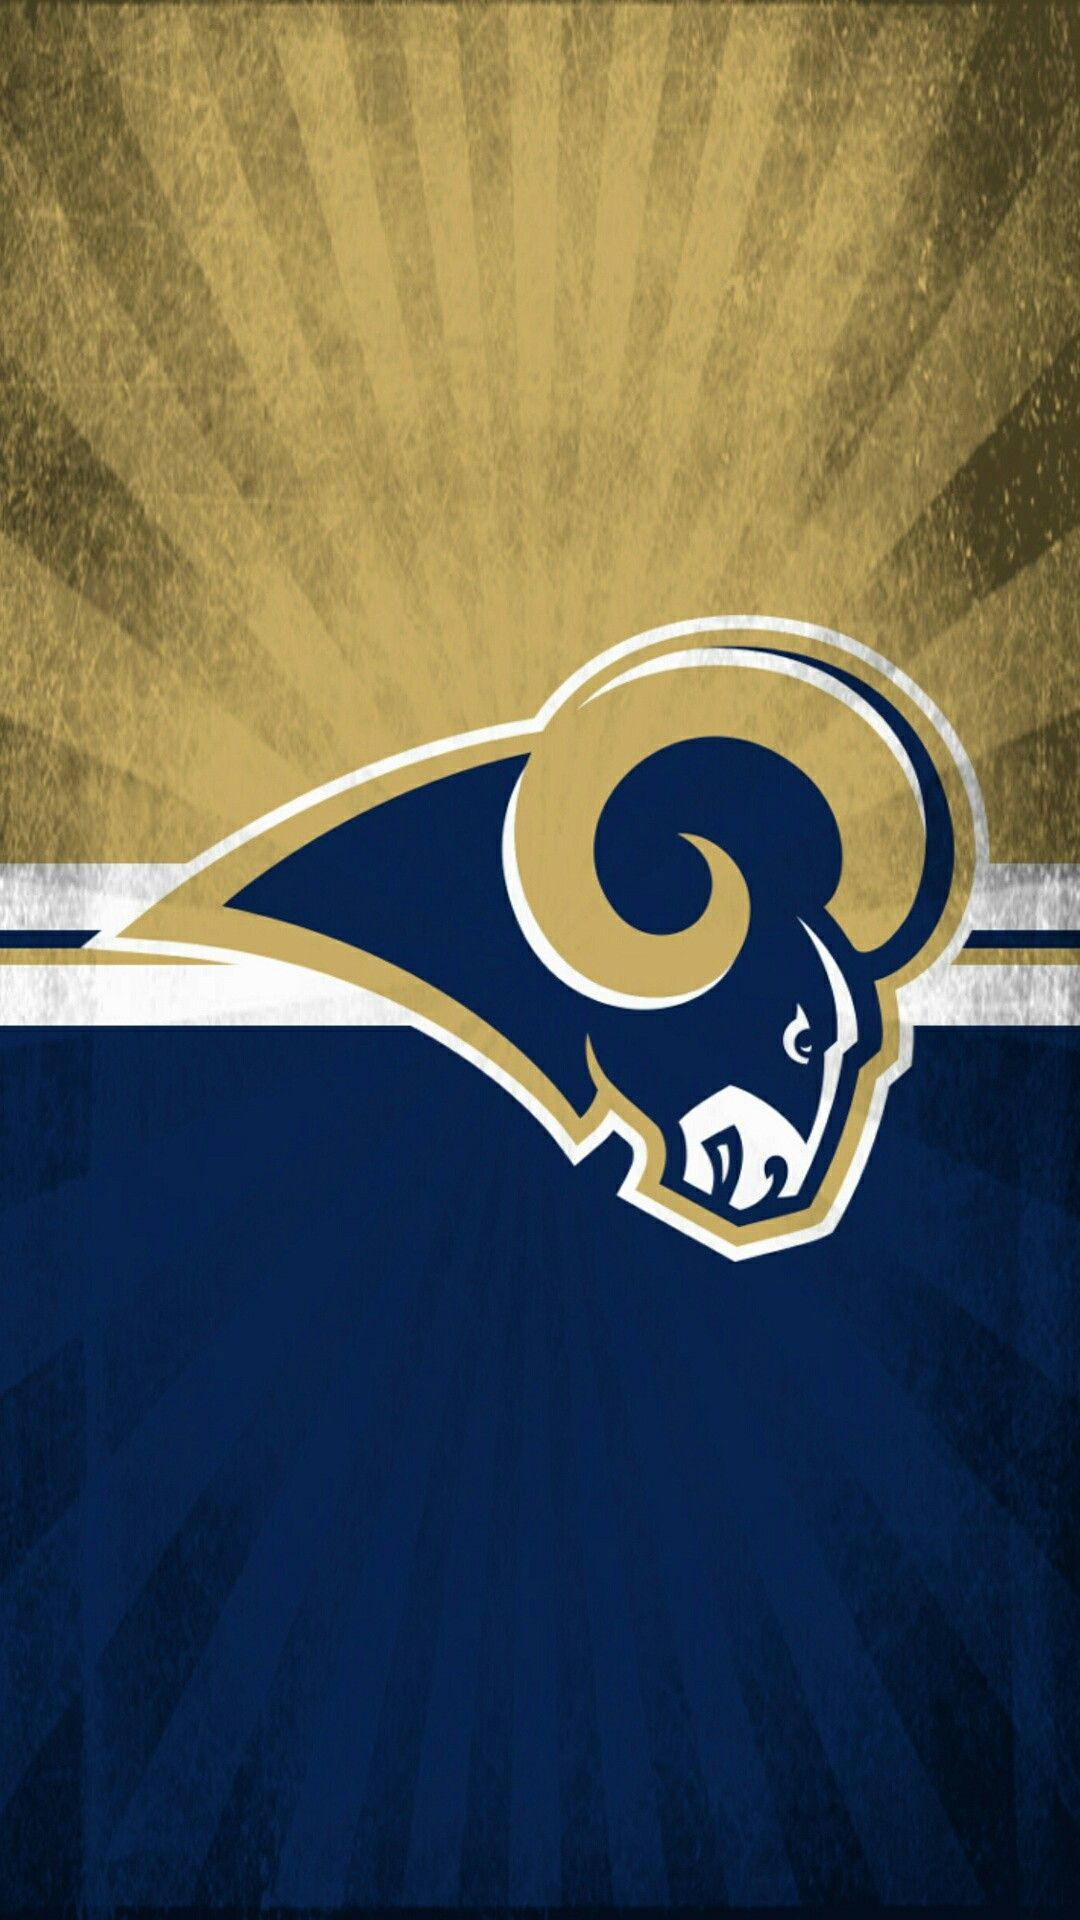 Go Rams Los Angeles Rams Logo La Rams Rams Football